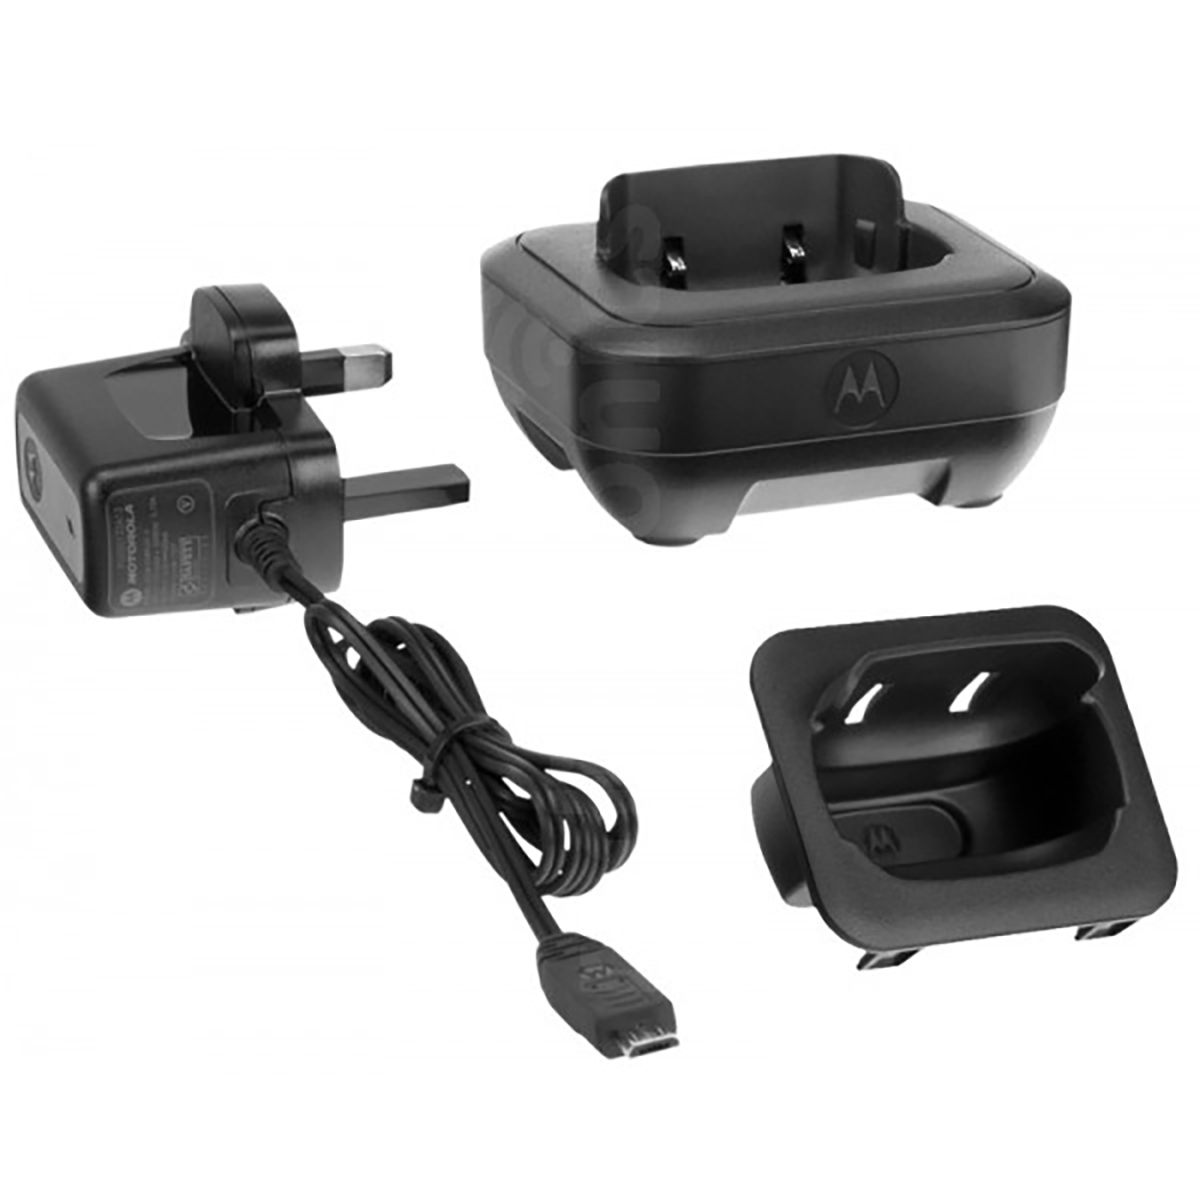 Motorola IXPN4040 T62 and T82 Drop In Charger